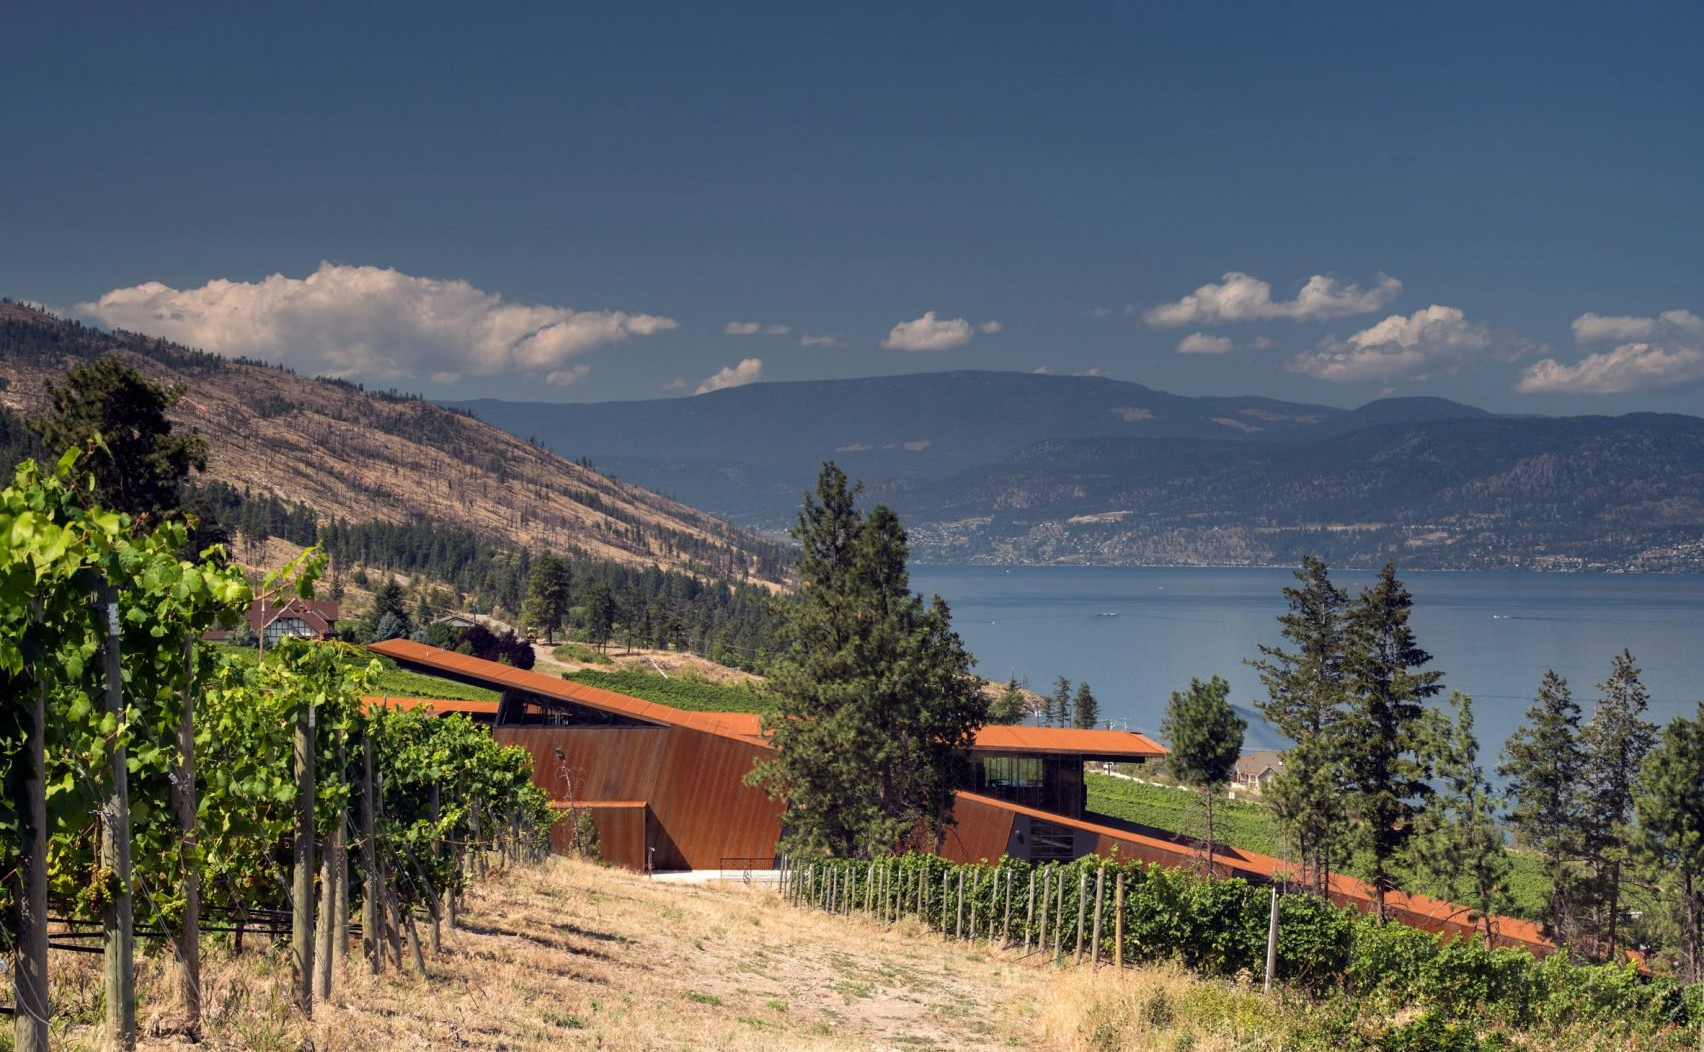 martins-lane-winery-olson-kundig_dezeen_2364_col_2-1704x1137